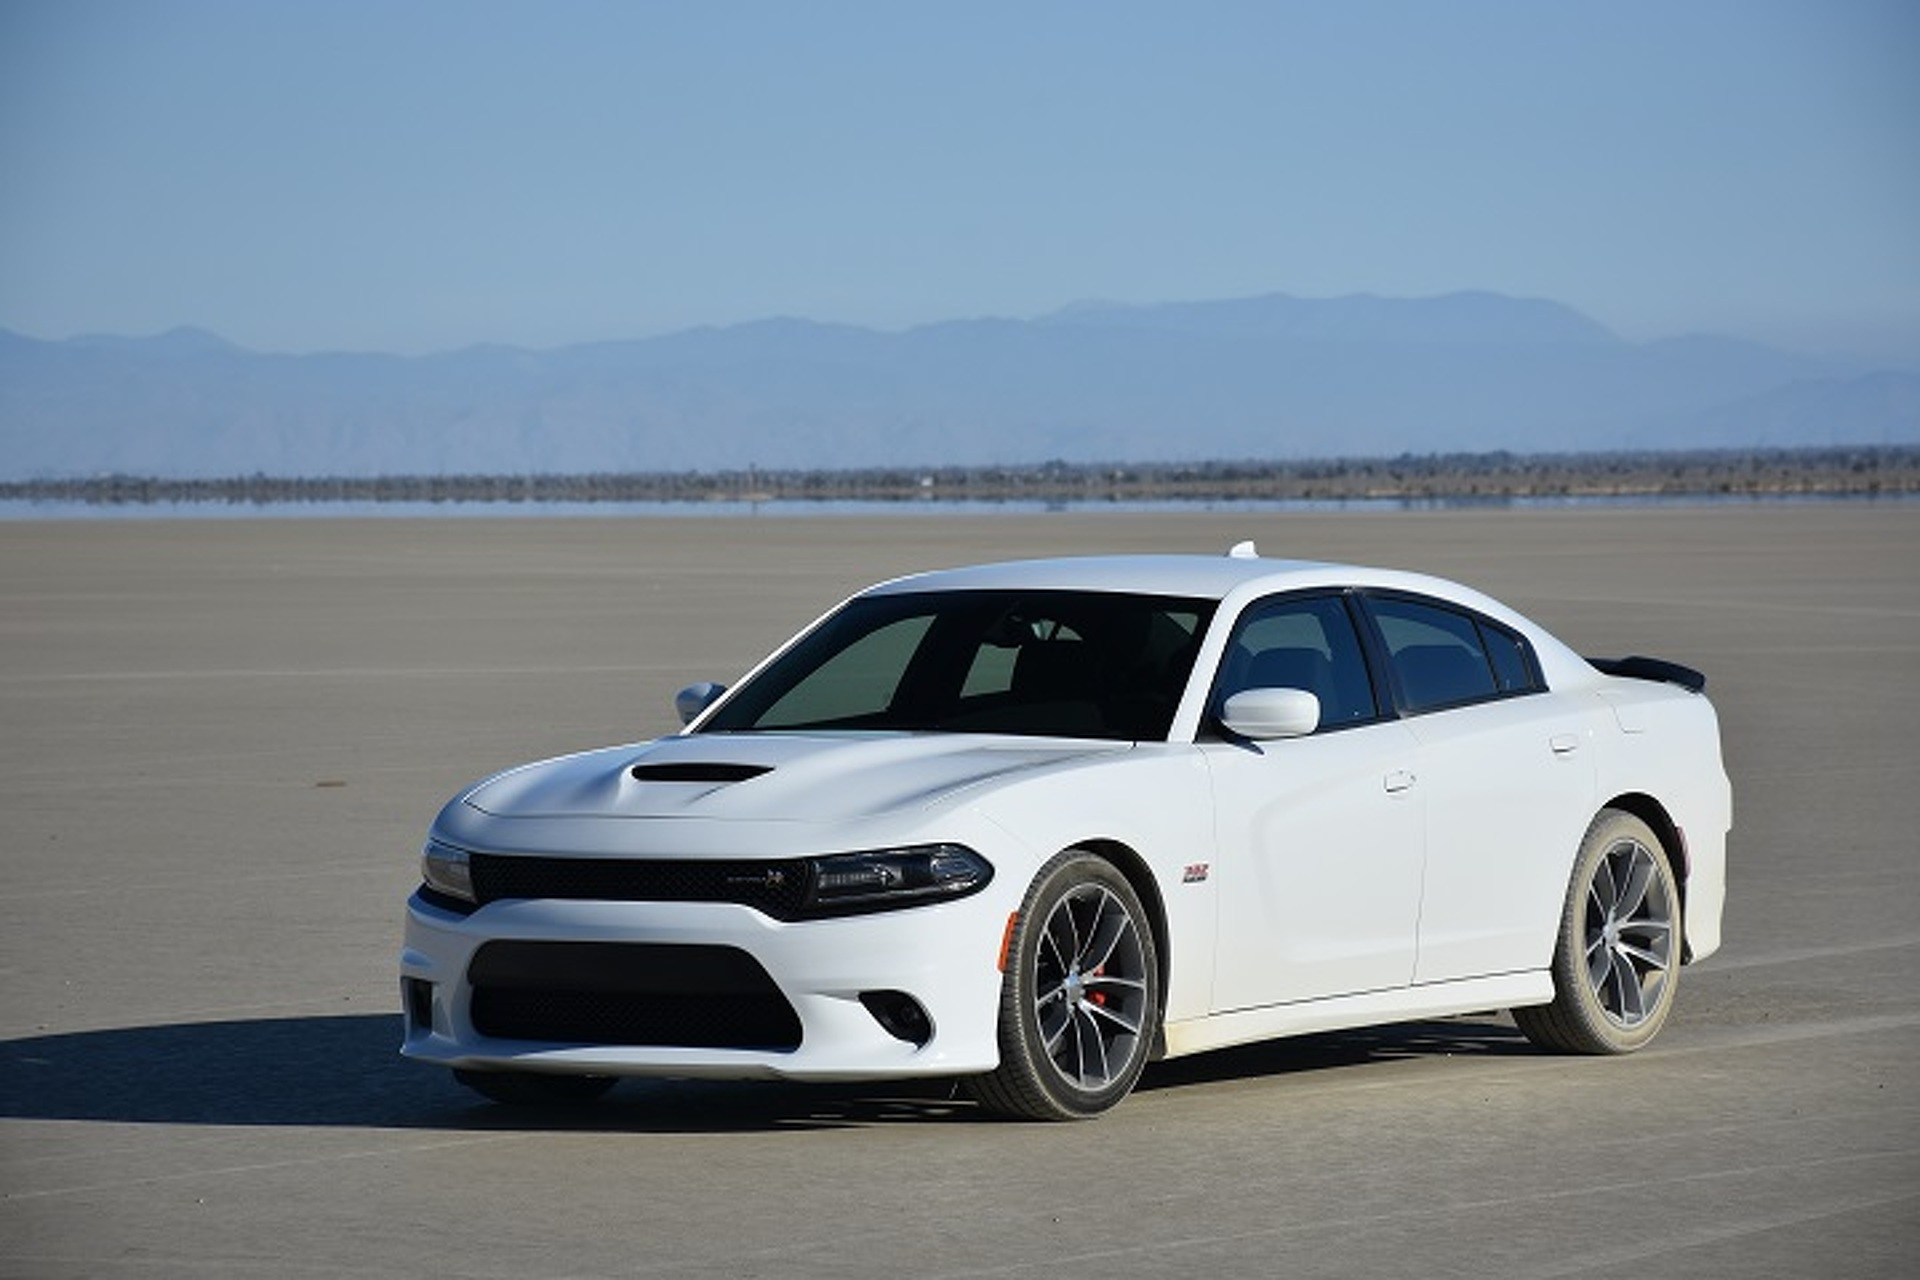 Dodge Charger Scat Pack vs El Mirage: How Fast Can We Go?